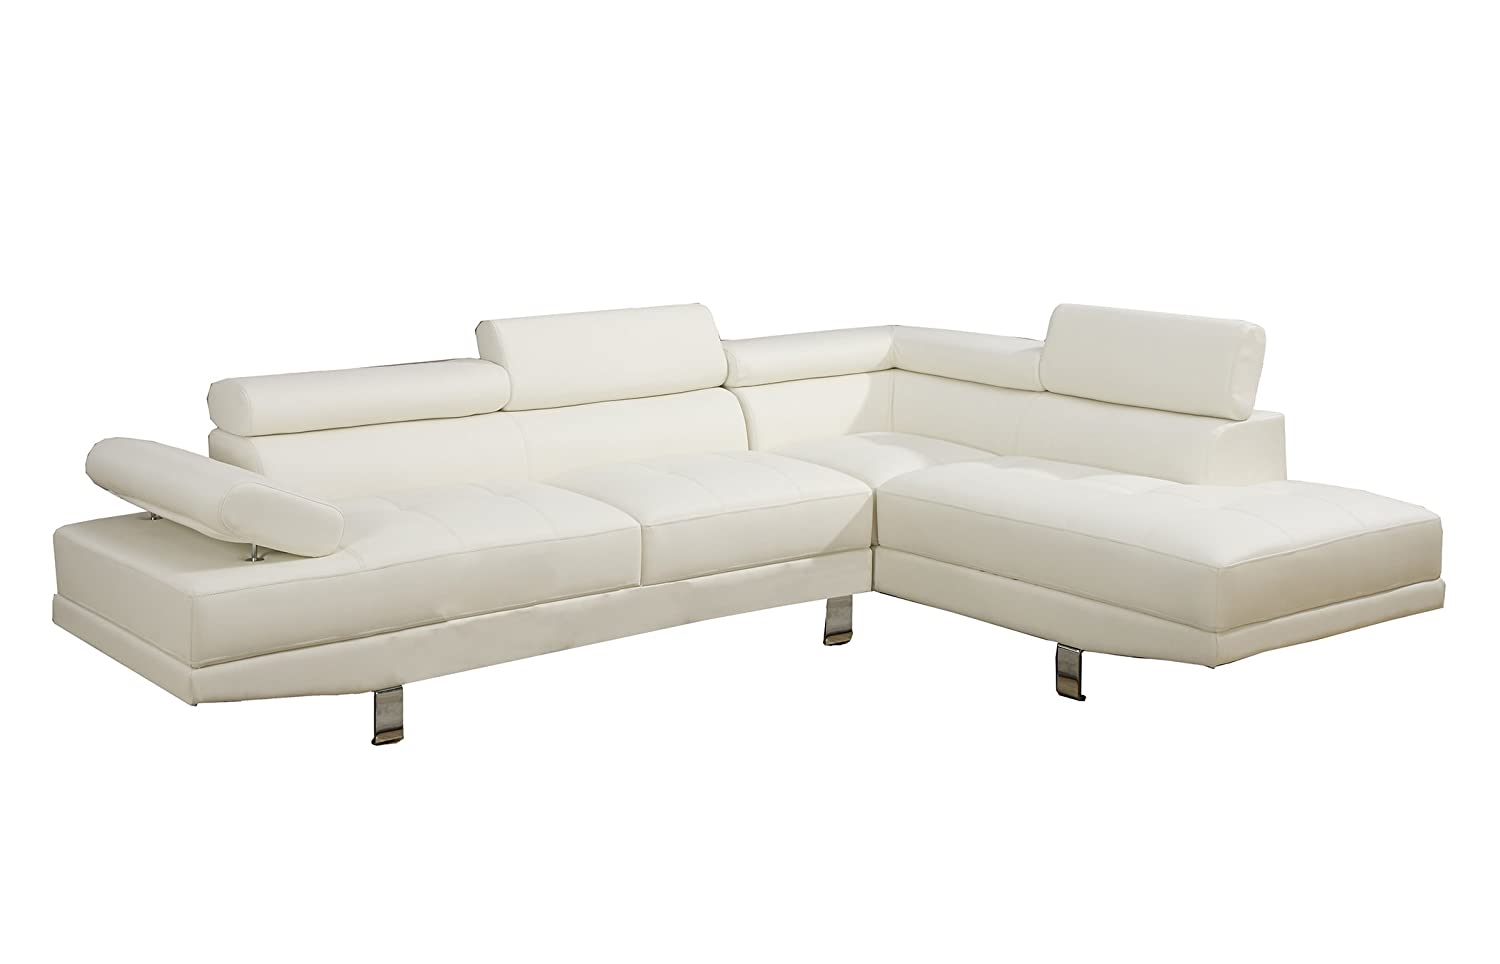 amazon com poundex 2 pieces faux leather sectional right chaise amazon com poundex 2 pieces faux leather sectional right chaise sofa white kitchen dining